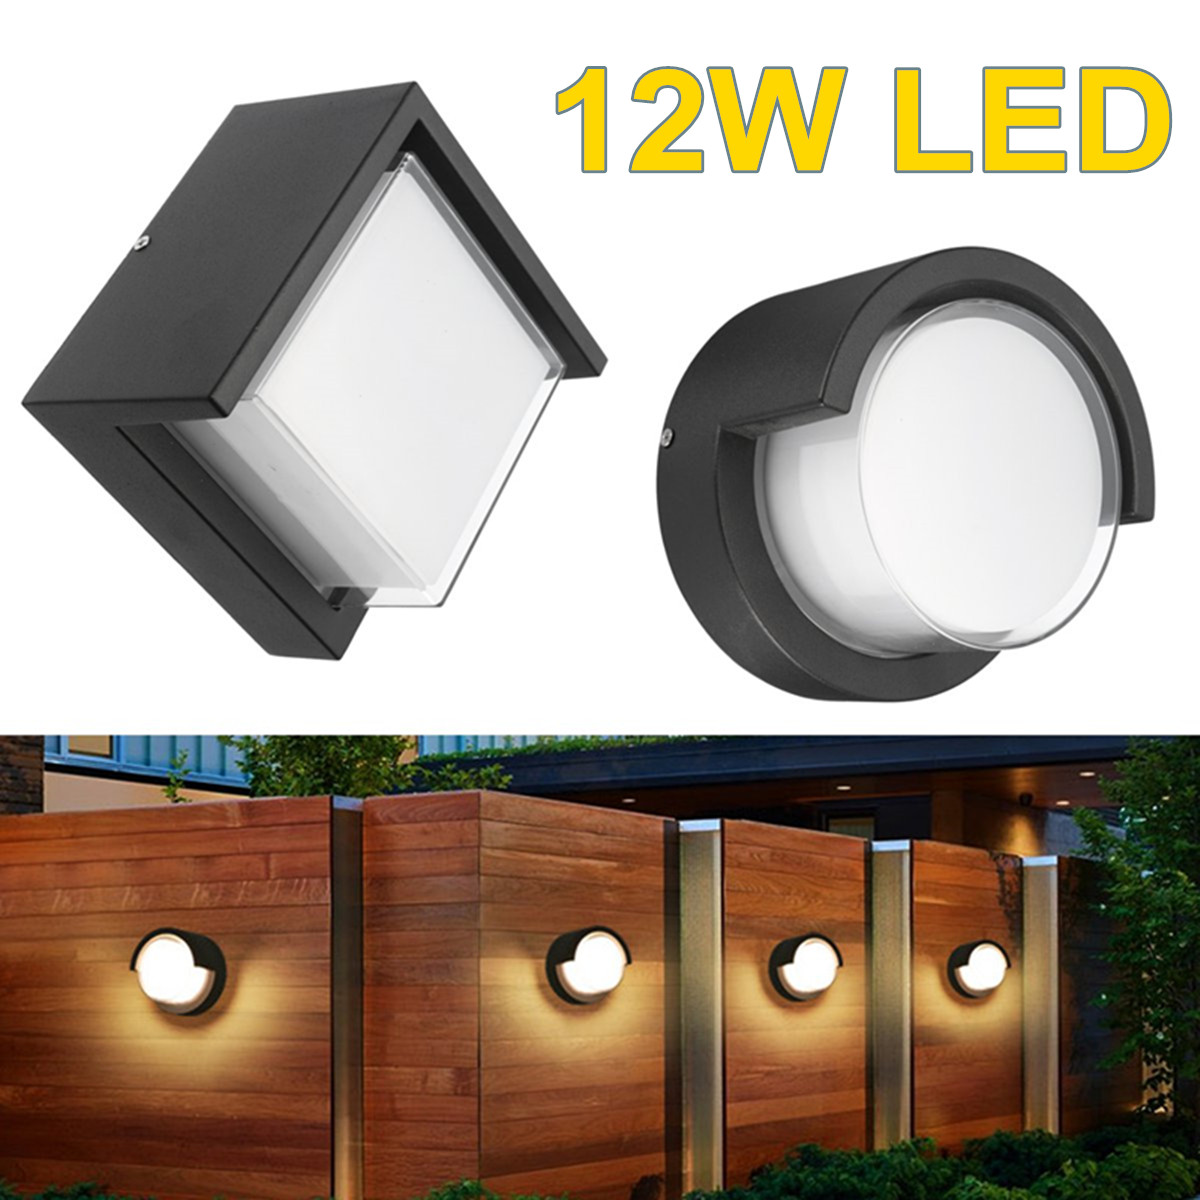 Waterproof Garden Porch Lamp Fixtures 12W LED Wall Light Indoor Outdoor Night Light Round / Square Black Outdoor Lighting